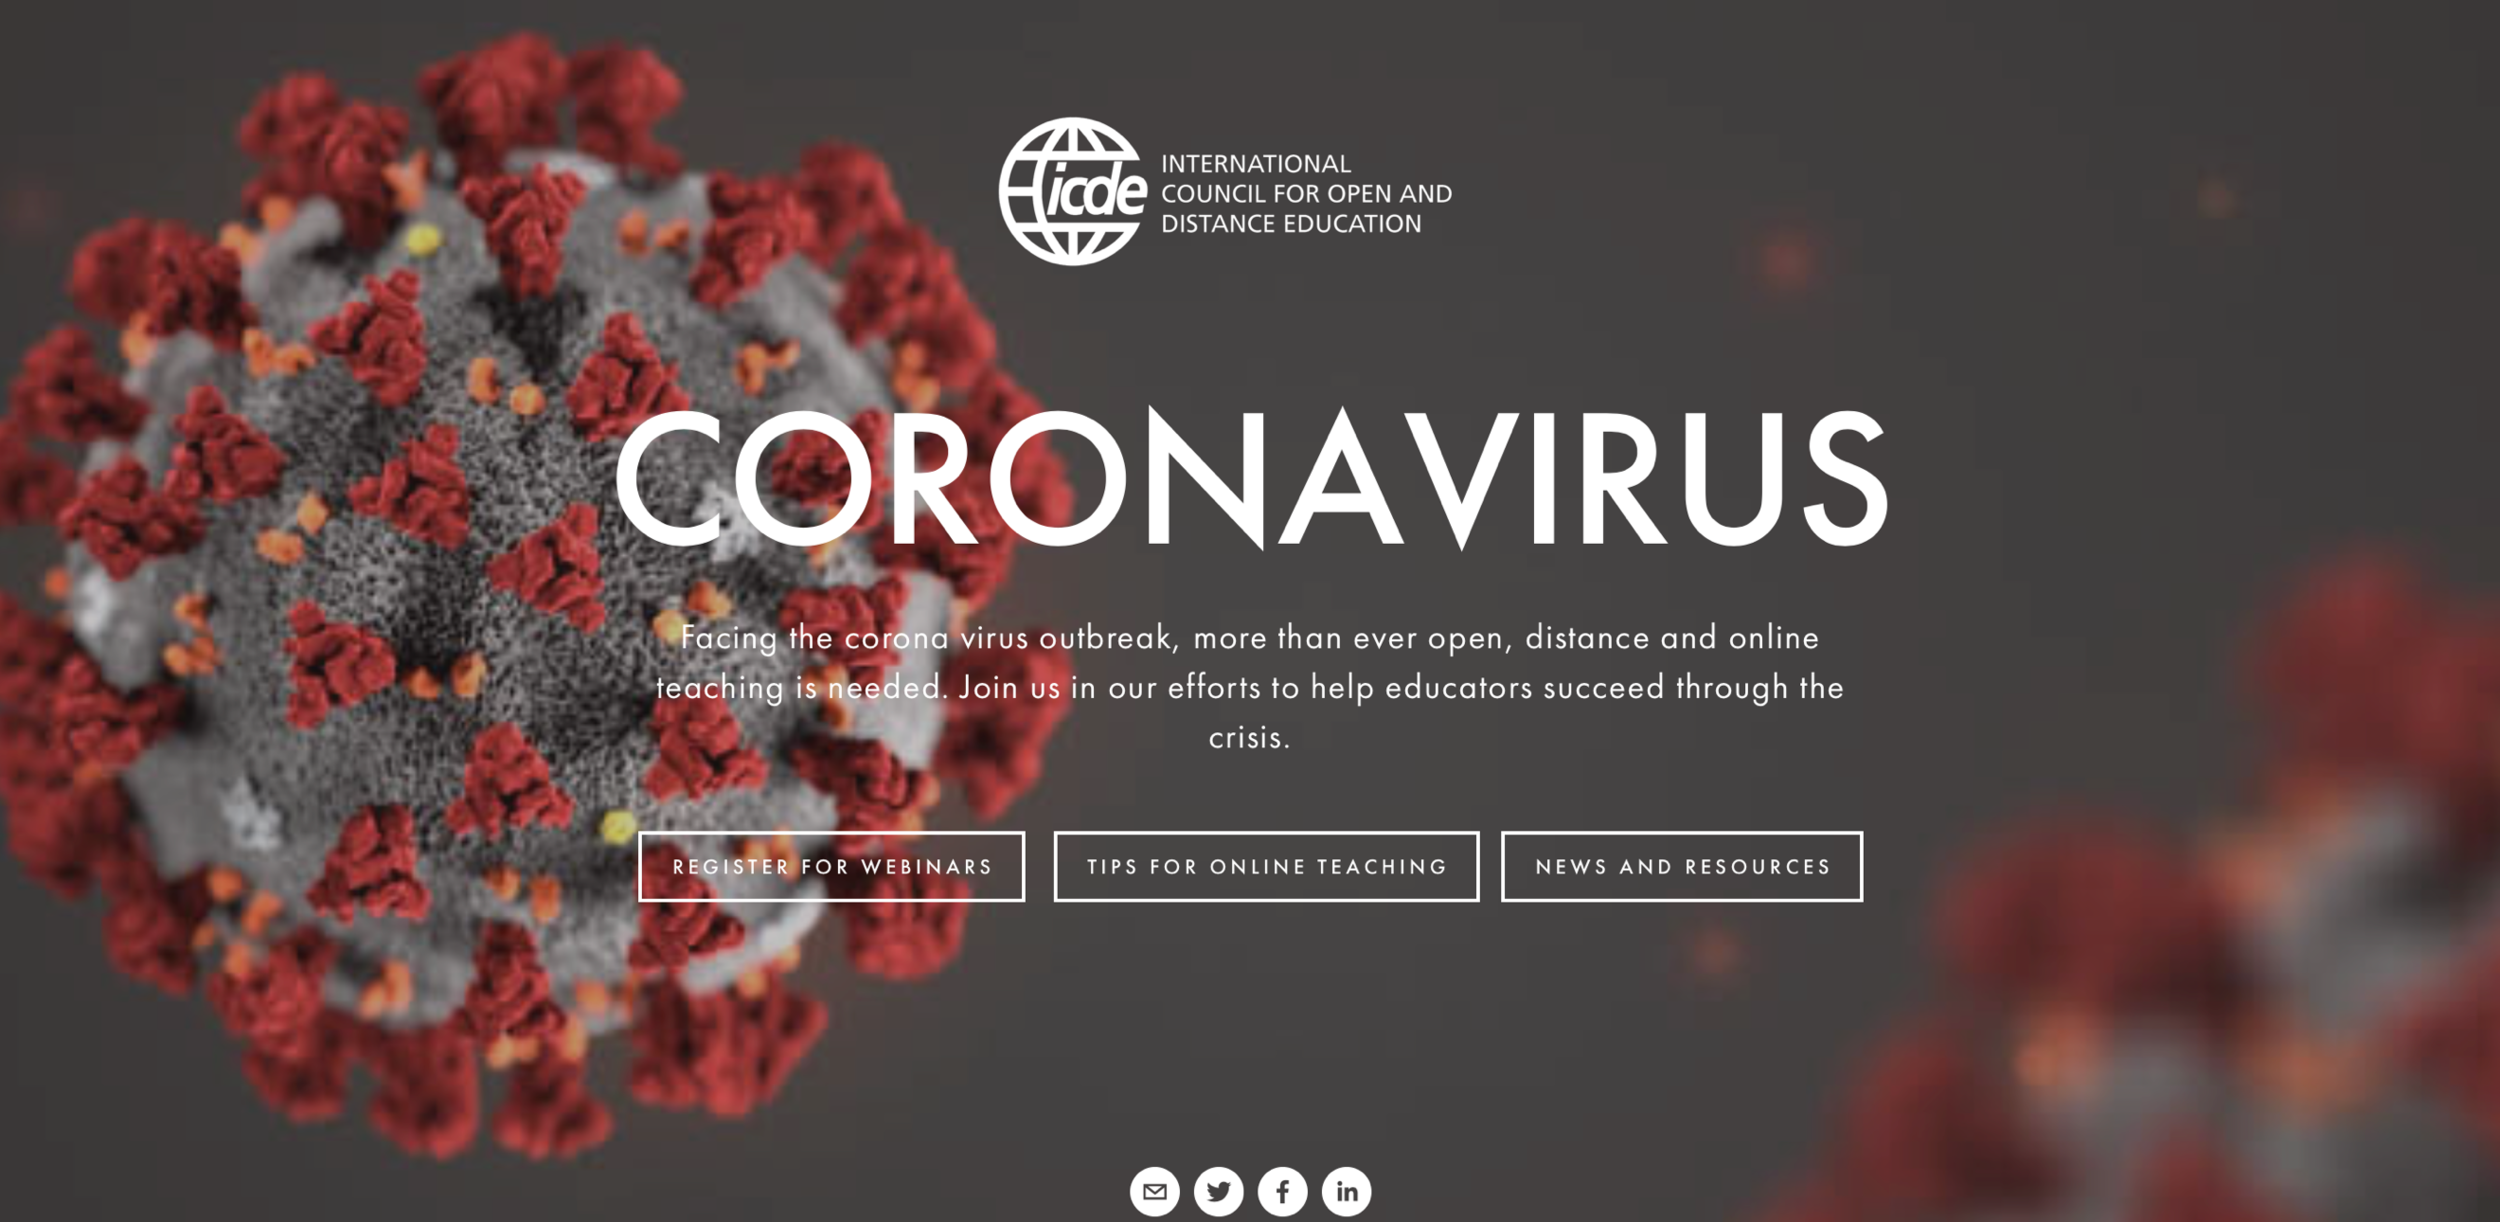 Open Online And Distance Teaching And Learning During The Corona Virus Pandemic Learningtogether Icde